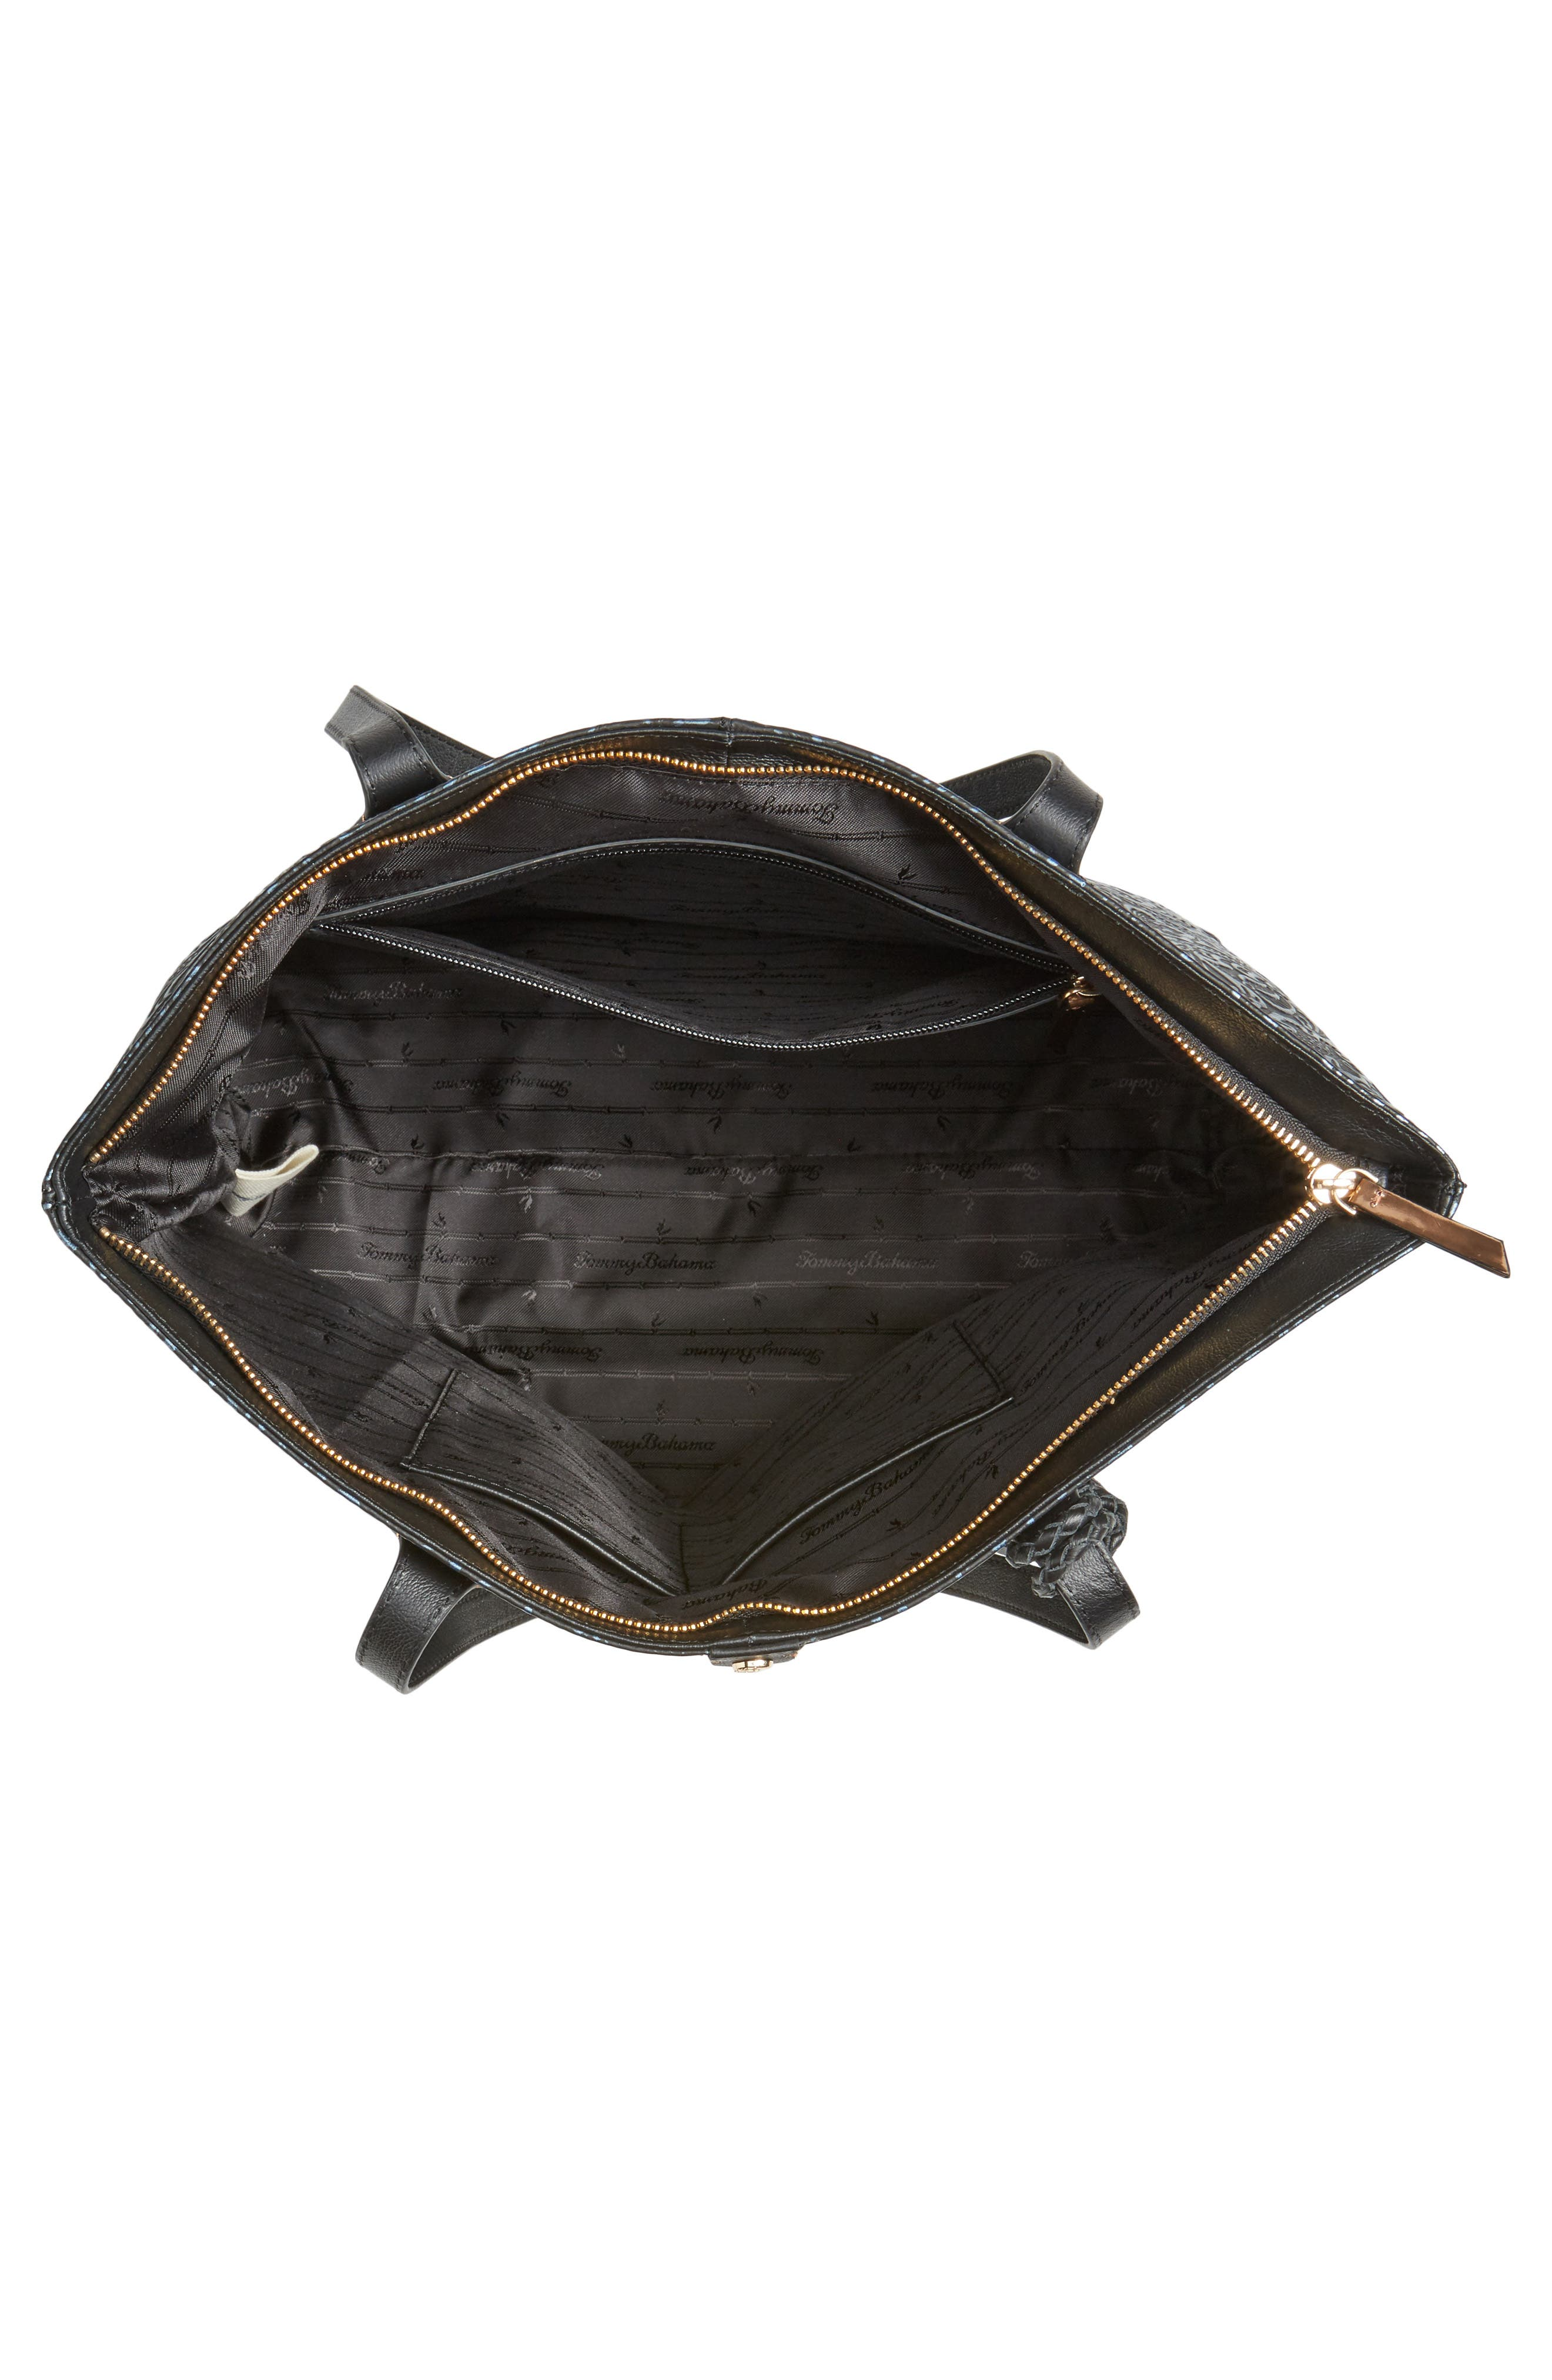 Barbados Leather Tote,                             Alternate thumbnail 4, color,                             001